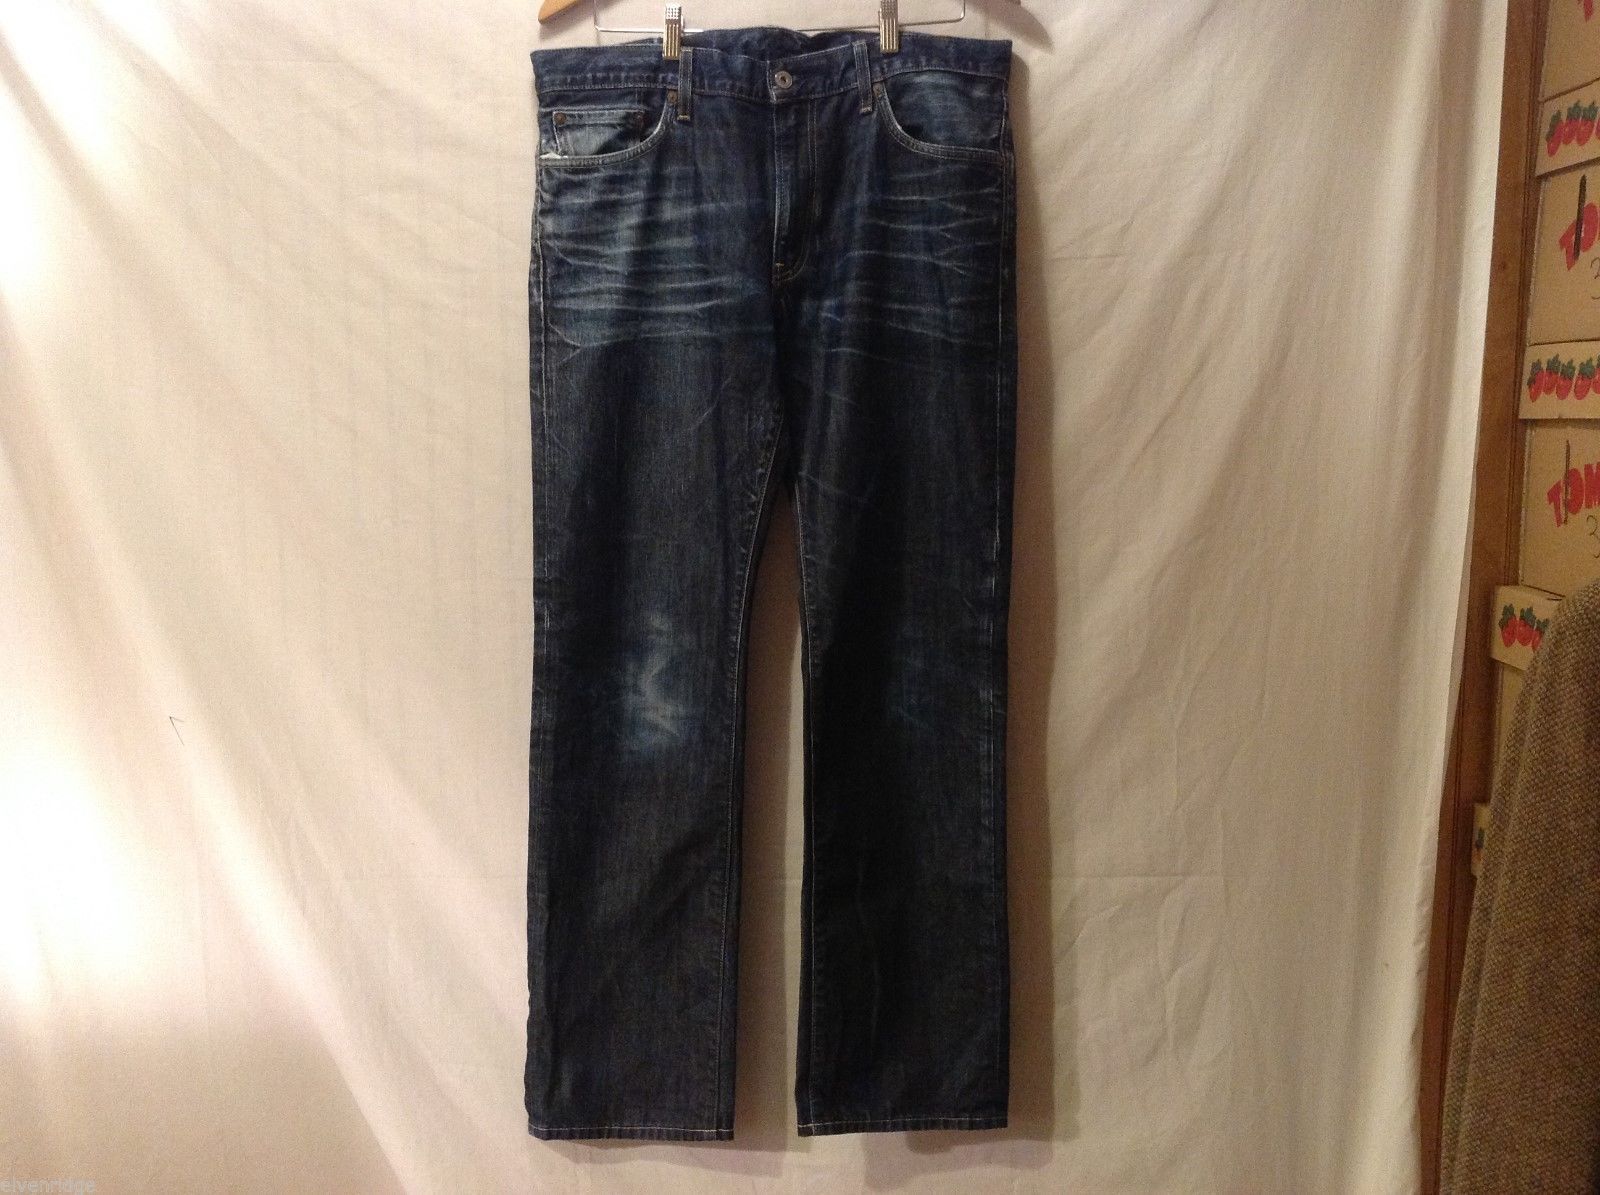 UJ Mens Denim Jeans, Size 35X32